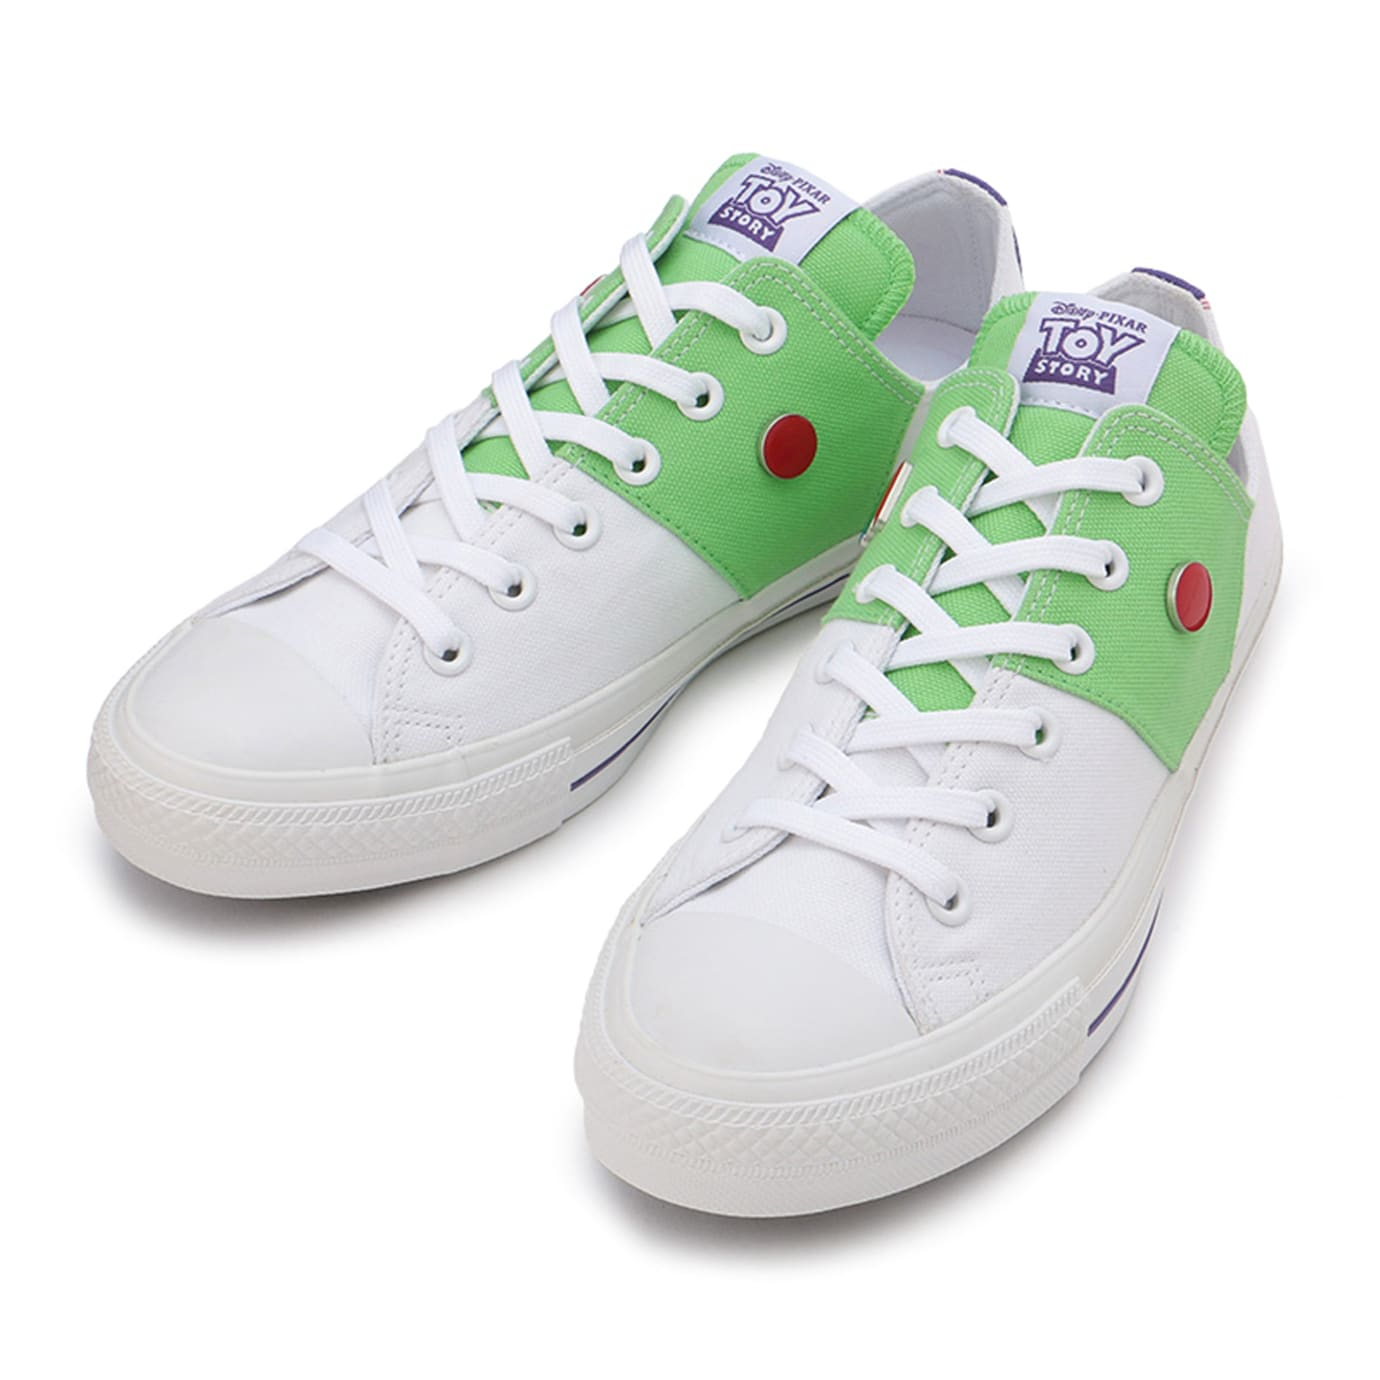 Toy Story x Converse Chuck Taylor All Star Low 32862650 1